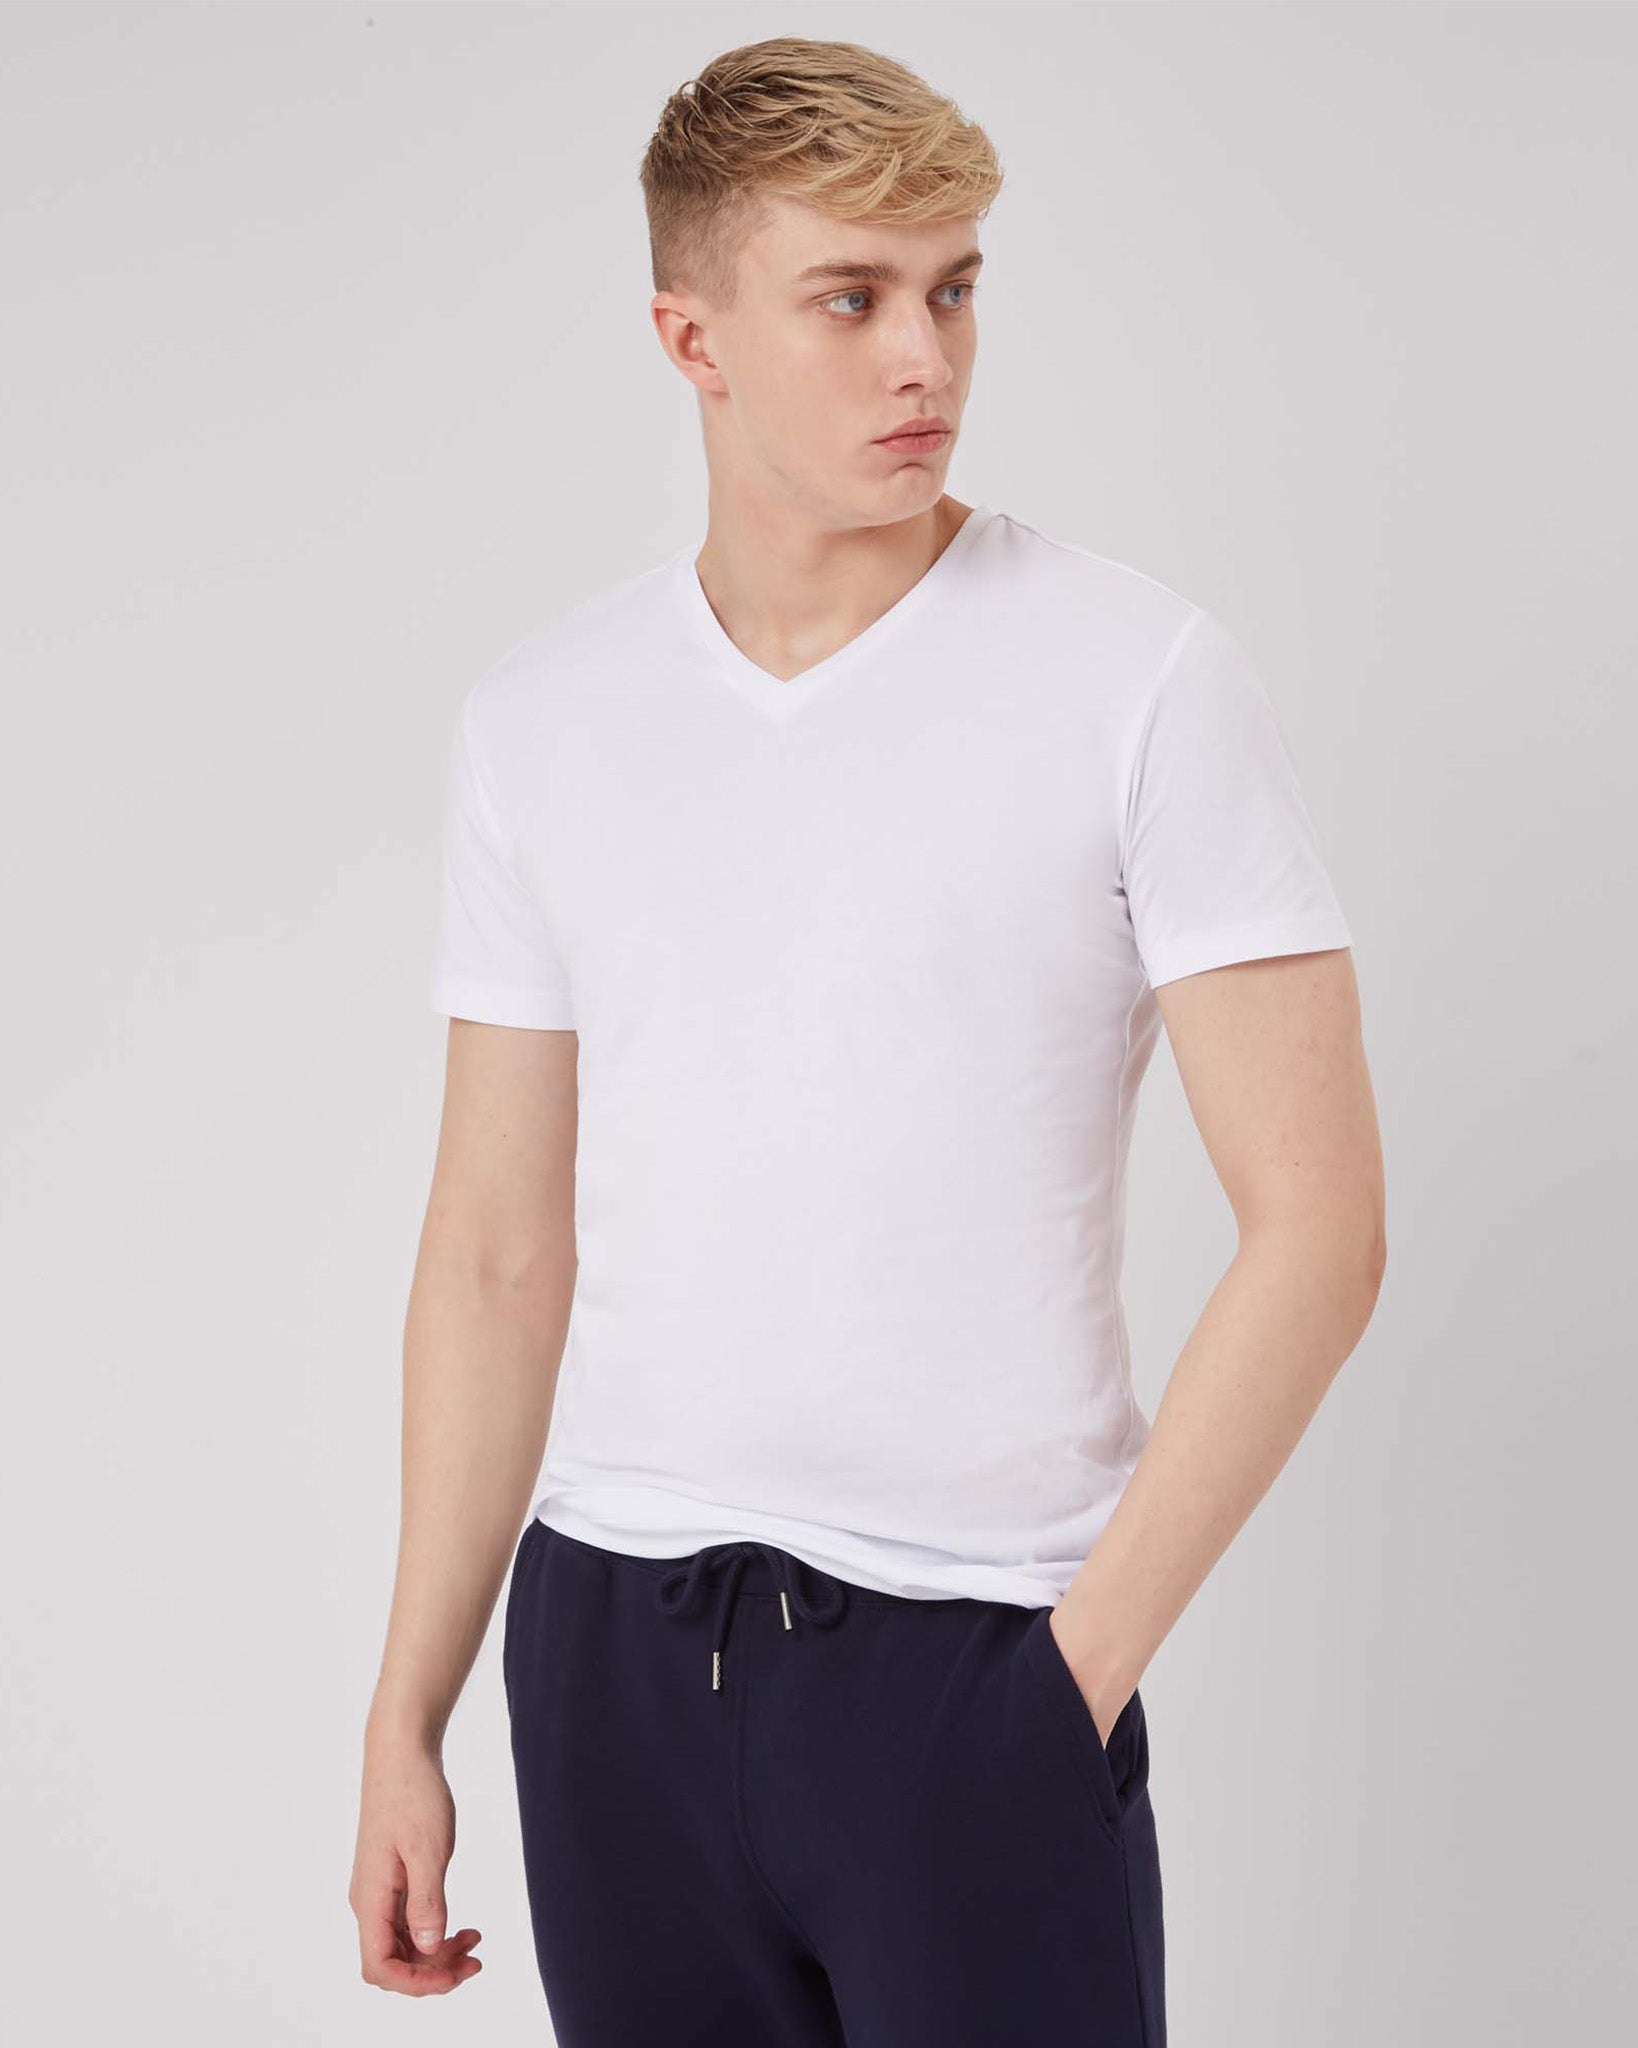 Men's white v-neck tee